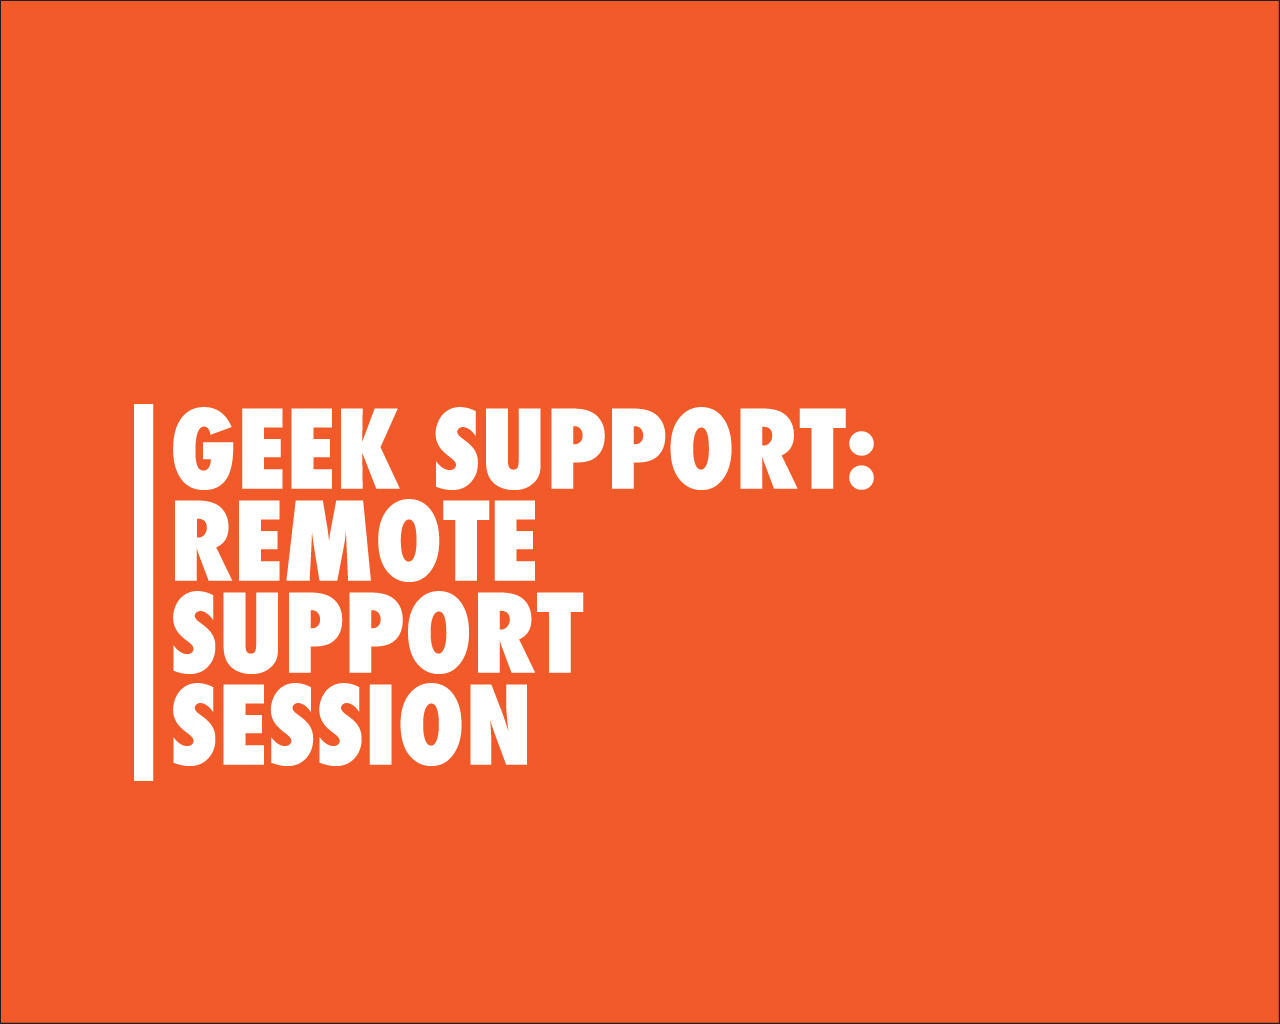 Remote Support Session (1 hour max) by eDesignsCompany - 97264